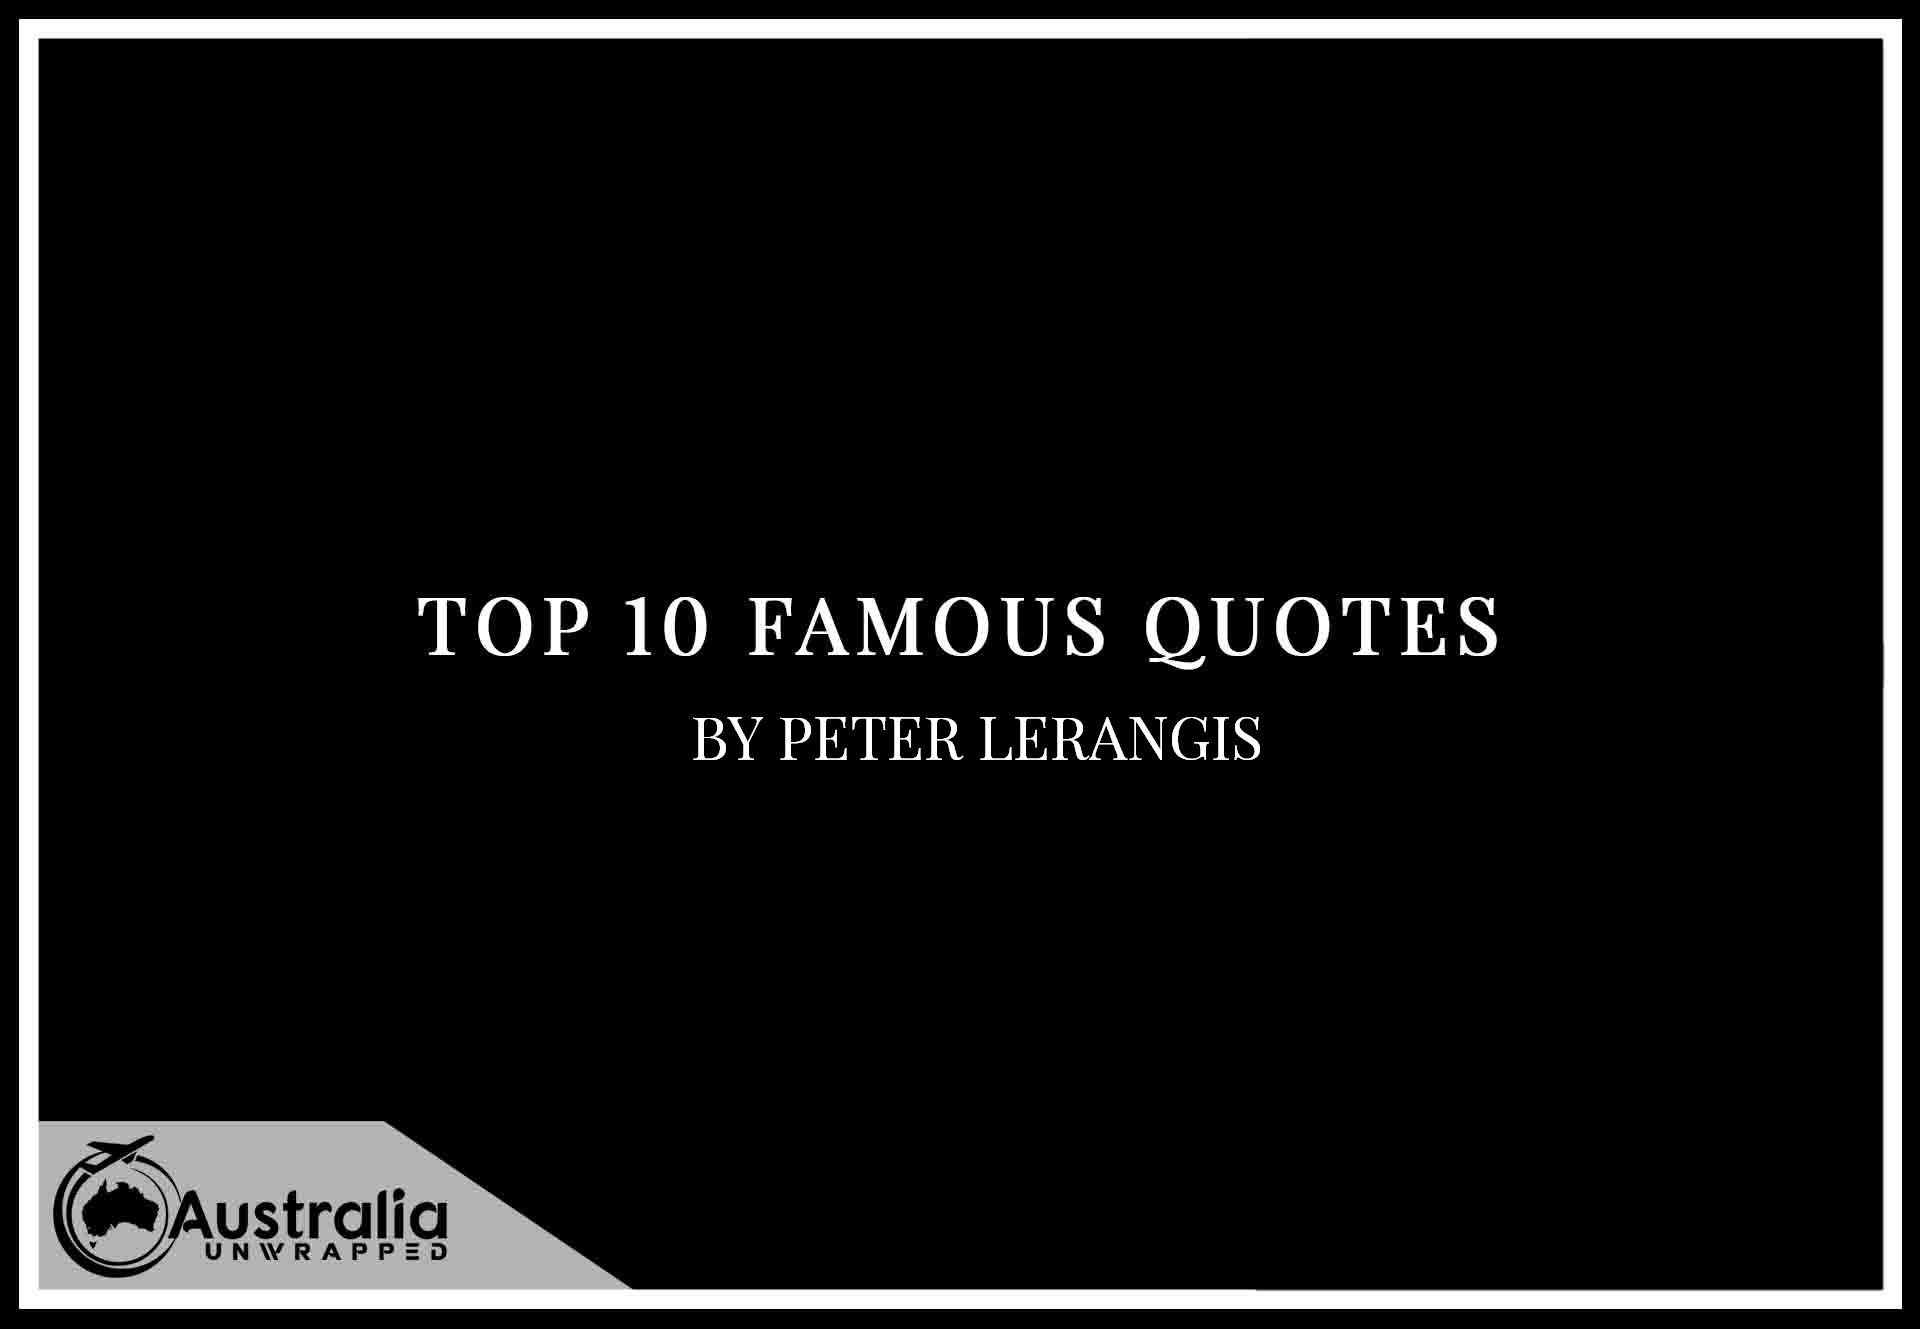 Top 10 Famous Quotes by Author Peter Lerangis